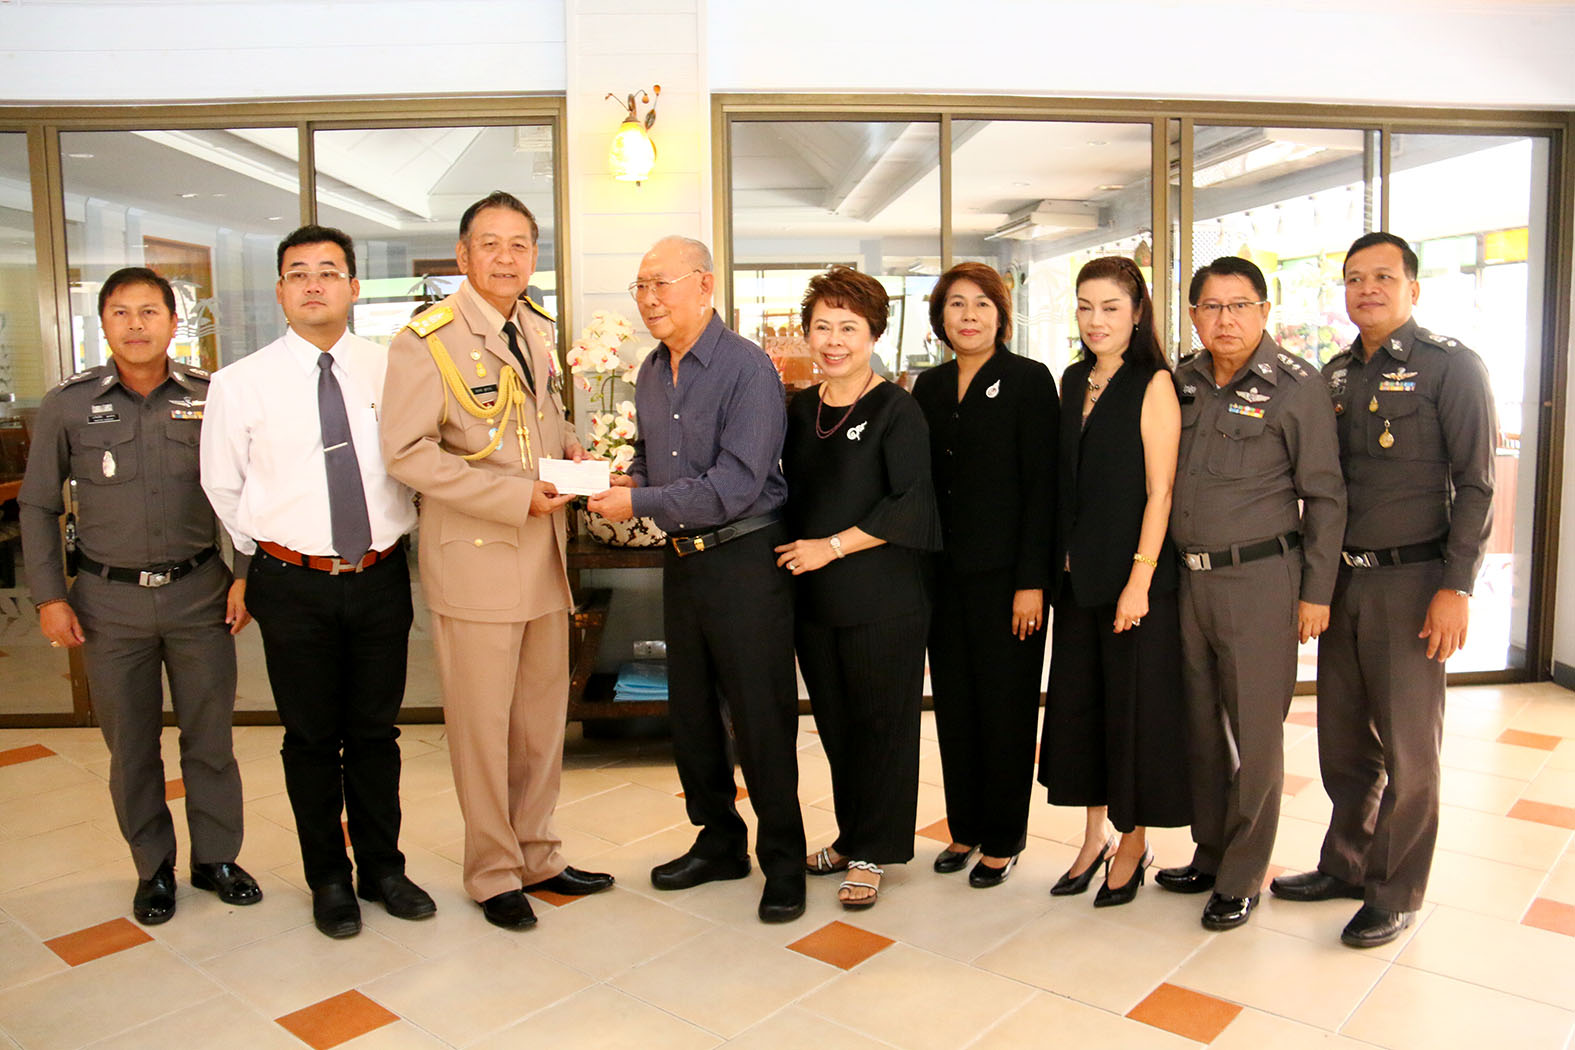 The Sabai hotel group donated a million baht to the Royal Thai Navy to cover expenses for flood-relief operations in the South.